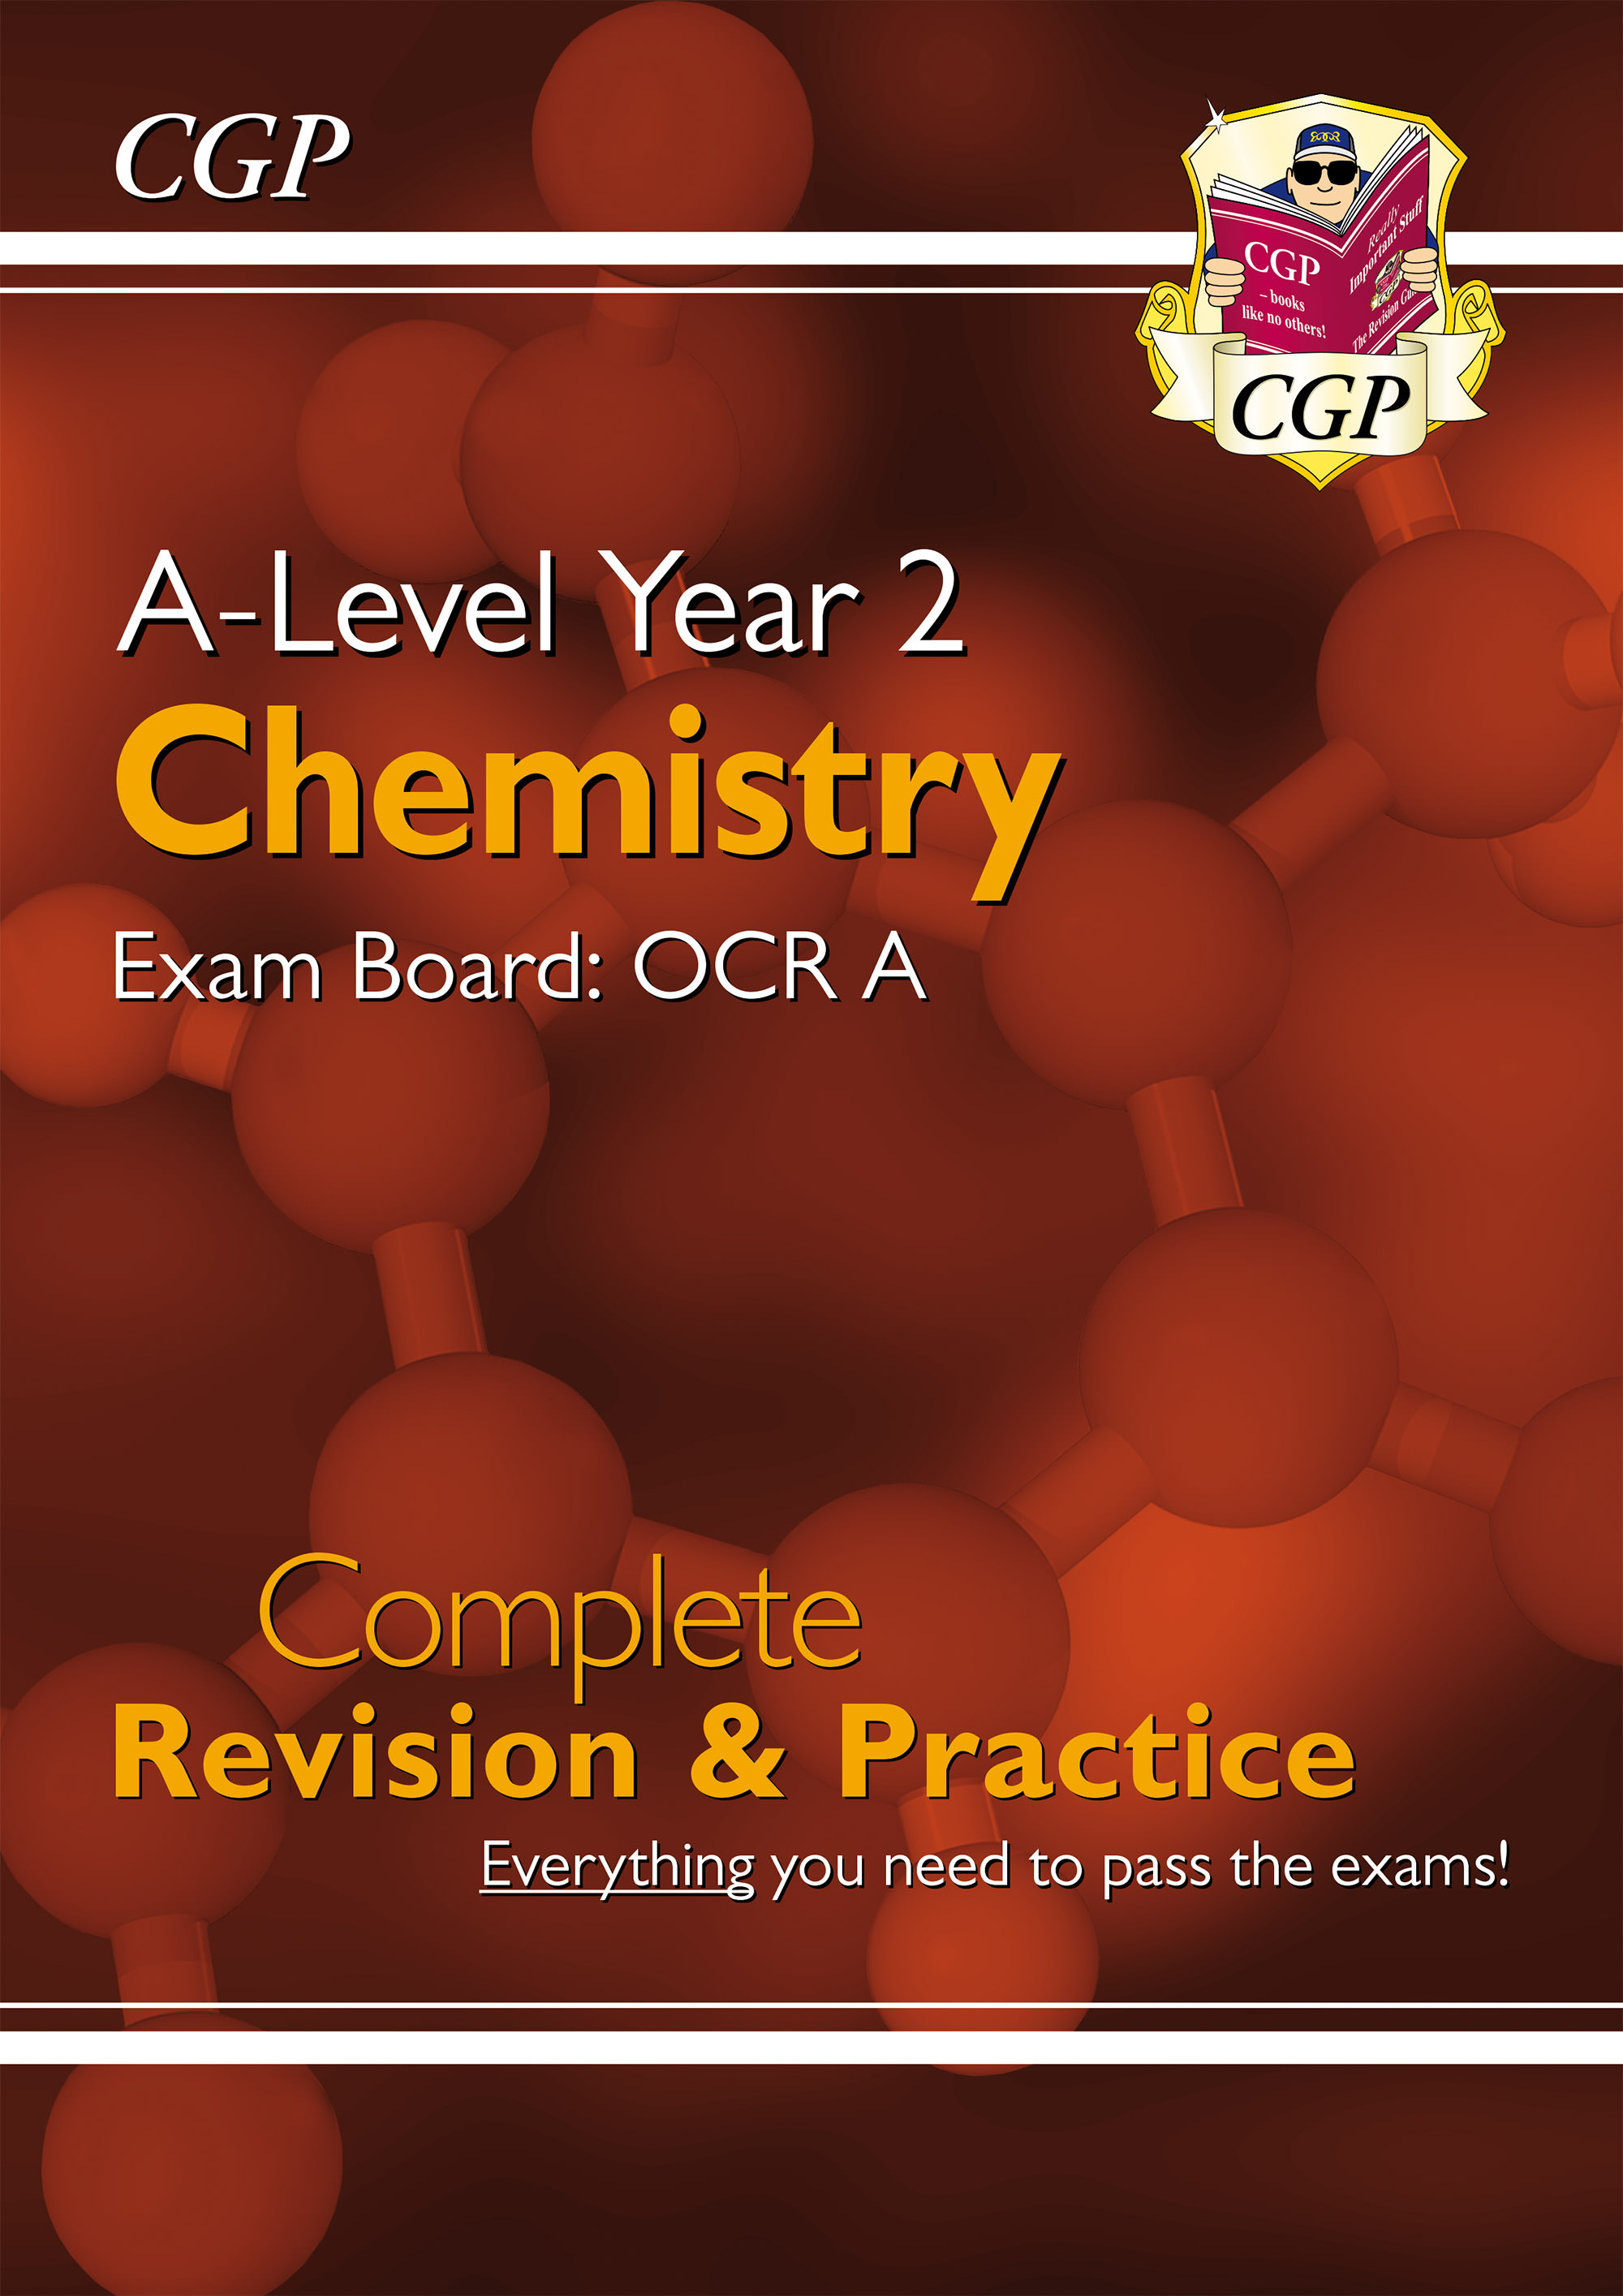 CRAR63DK - New A-Level Chemistry: OCR A Year 2 Complete Revision & Practice